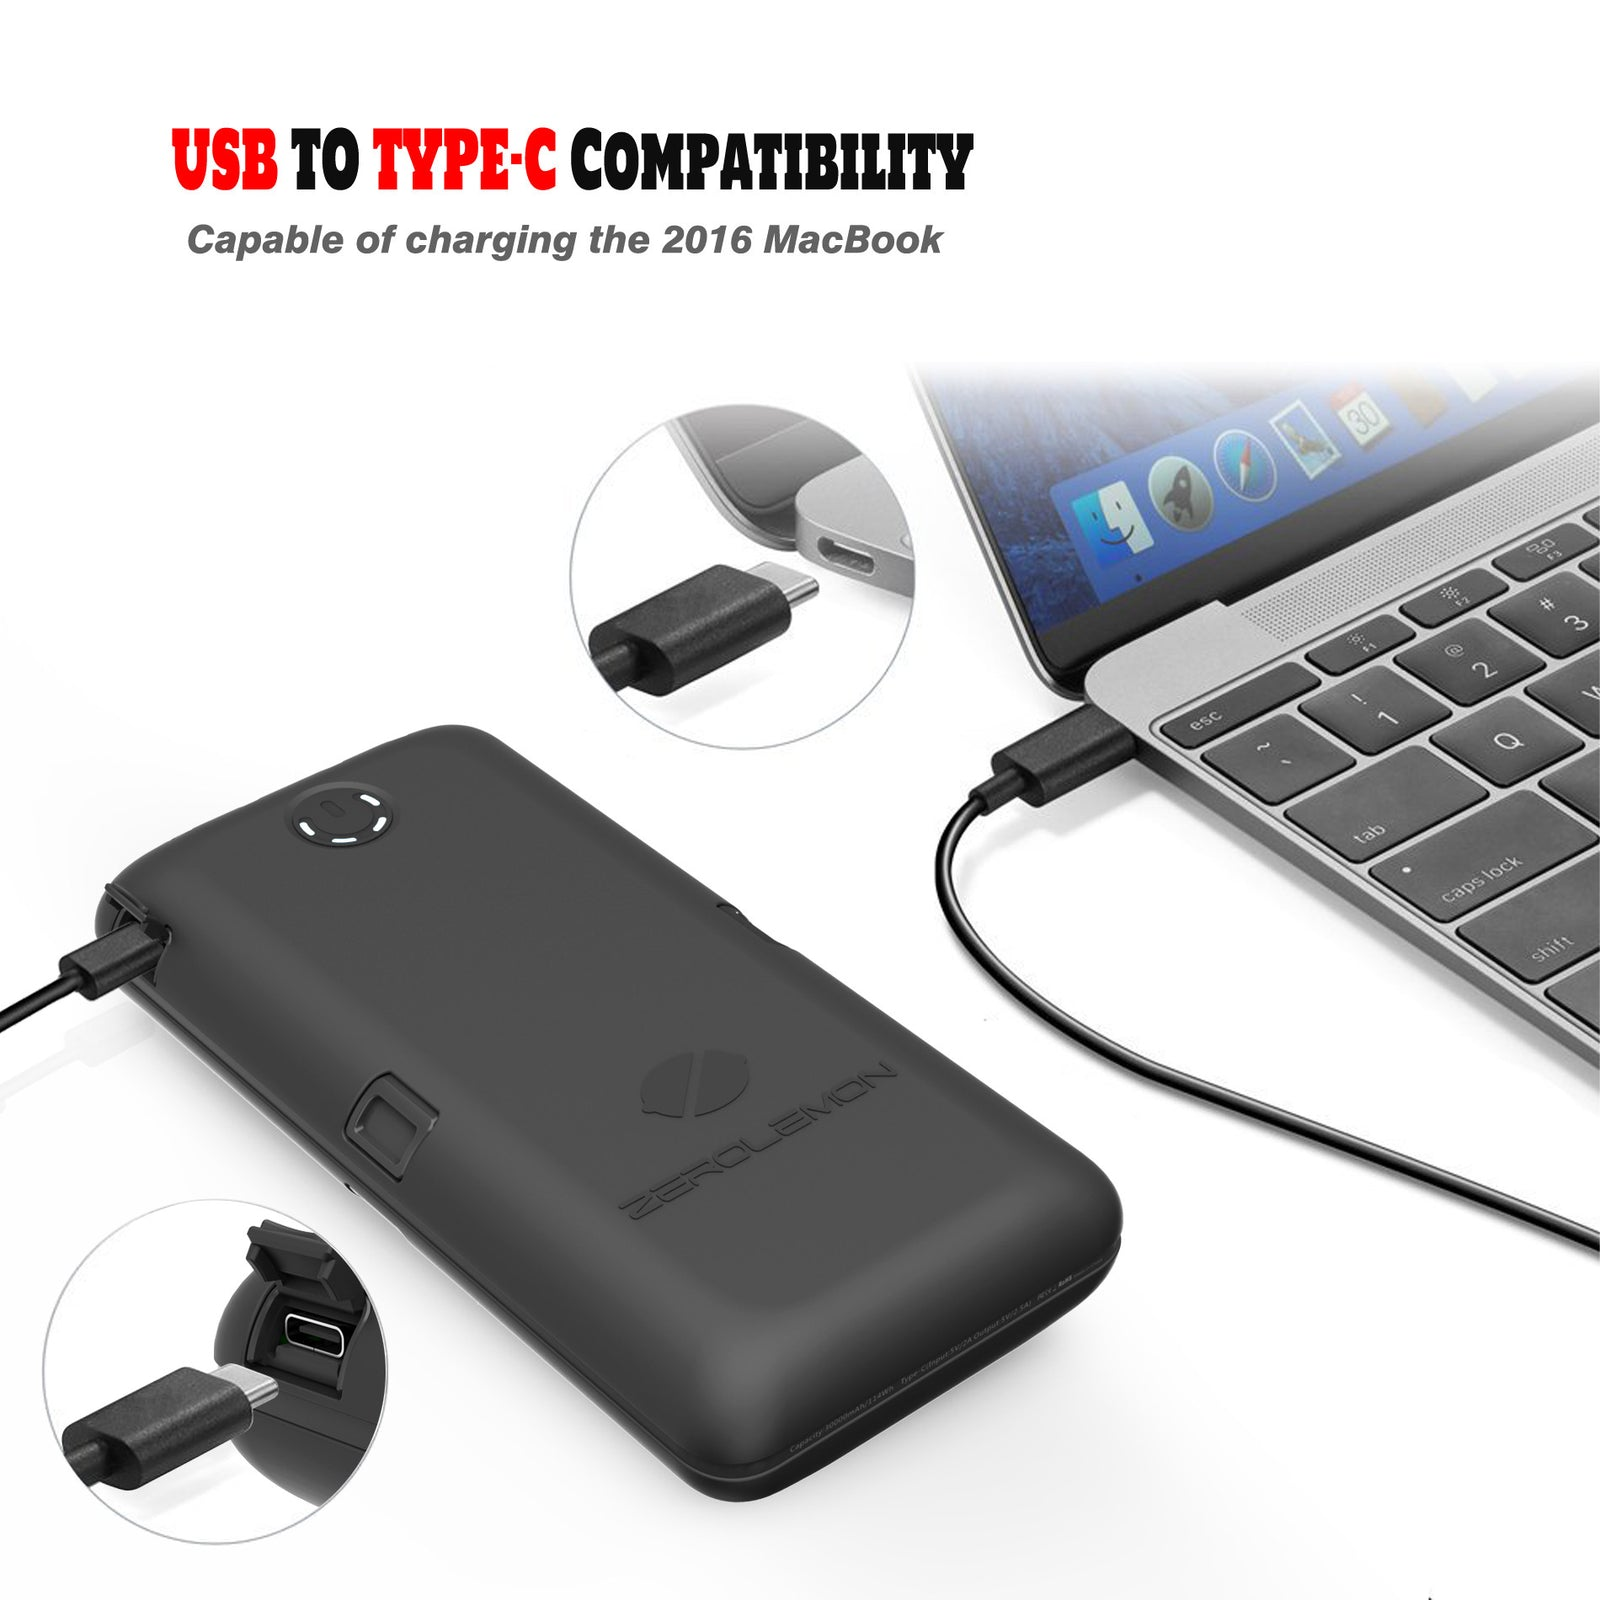 ToughJuice V2.0 External Battery 30000mAh [Shipping to US Only]